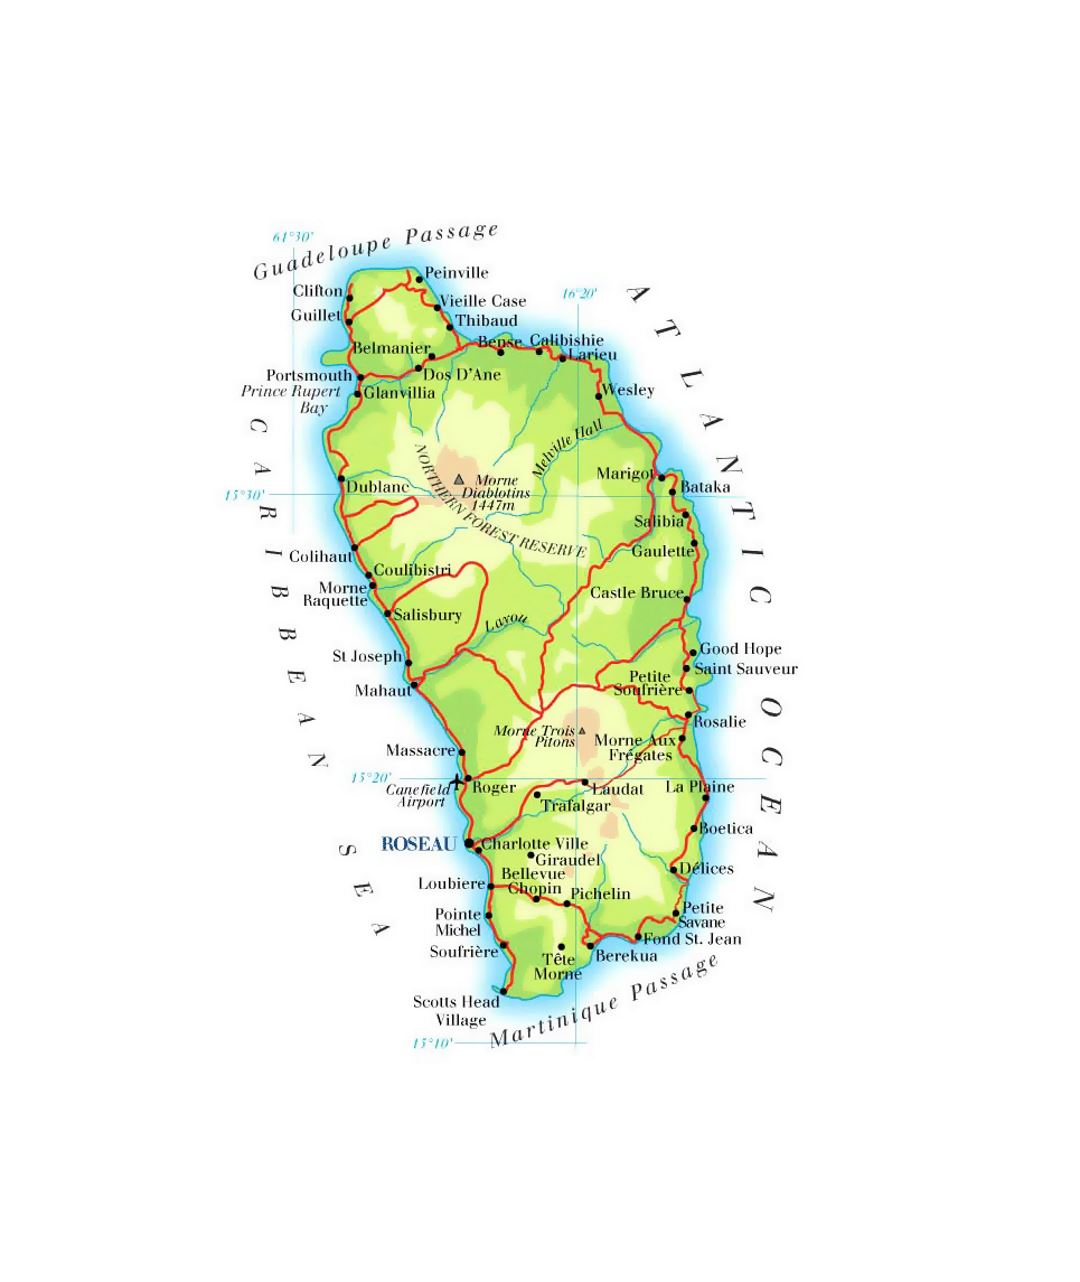 Detailed elevation map of Dominica with roads, cities and airports